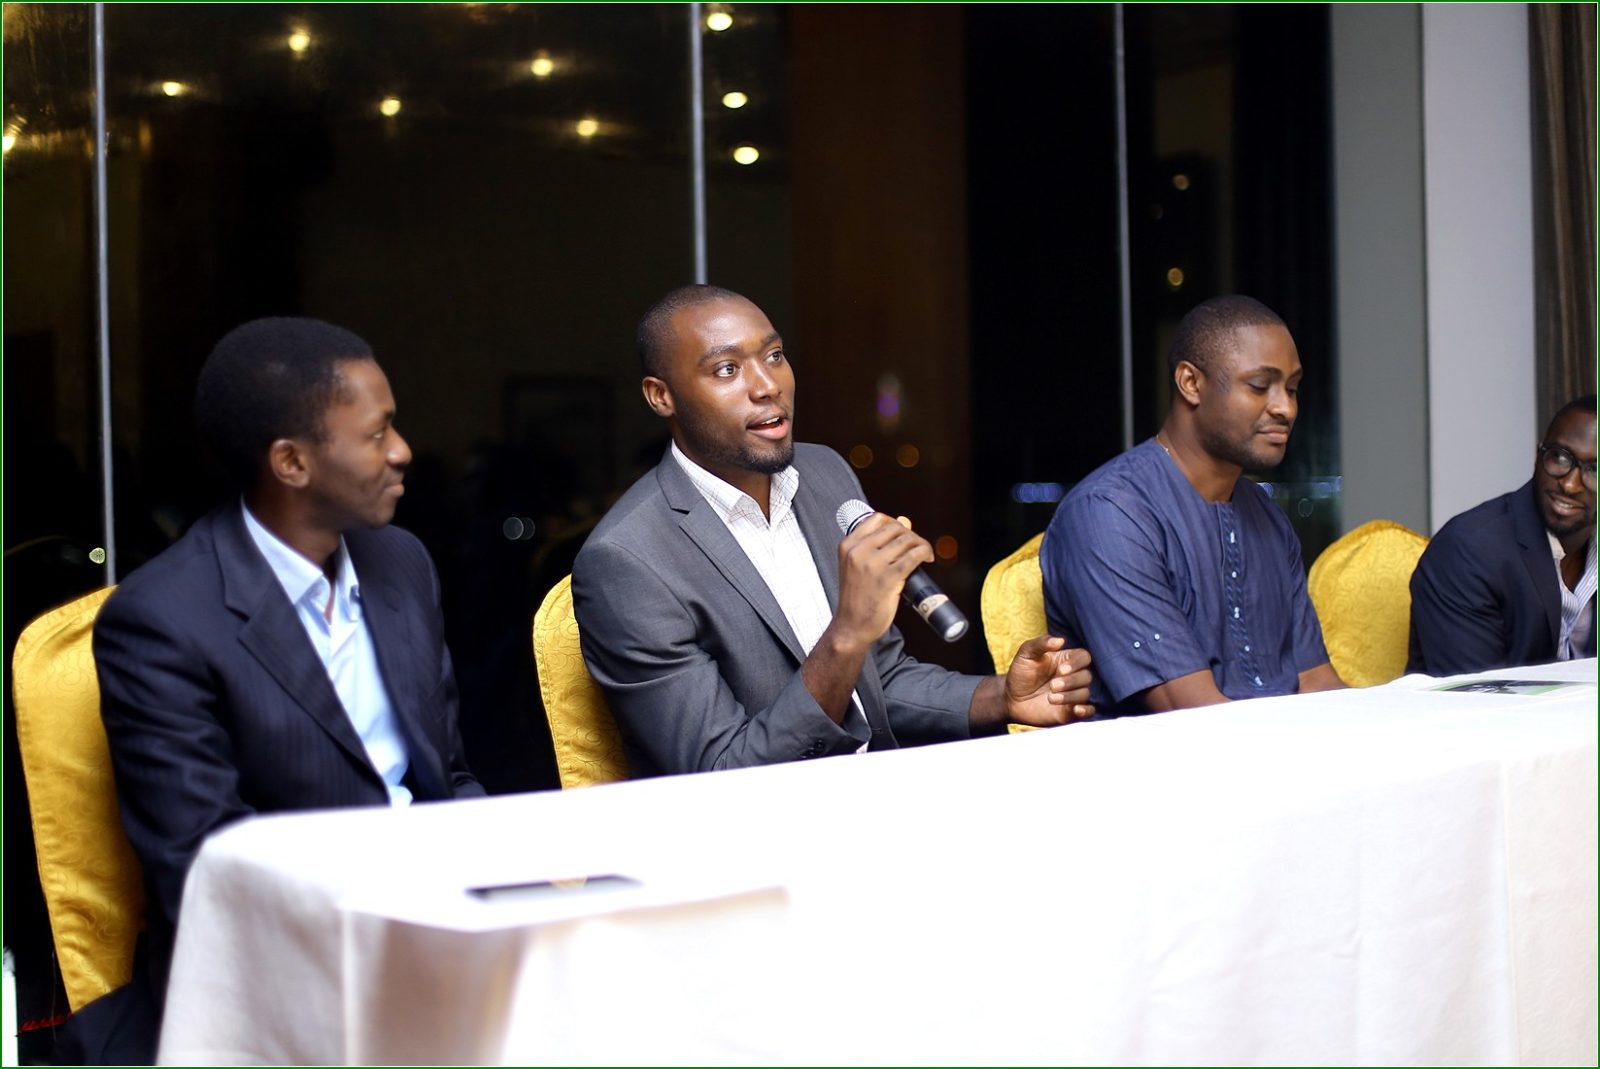 MBTN Networking Night, Lagos